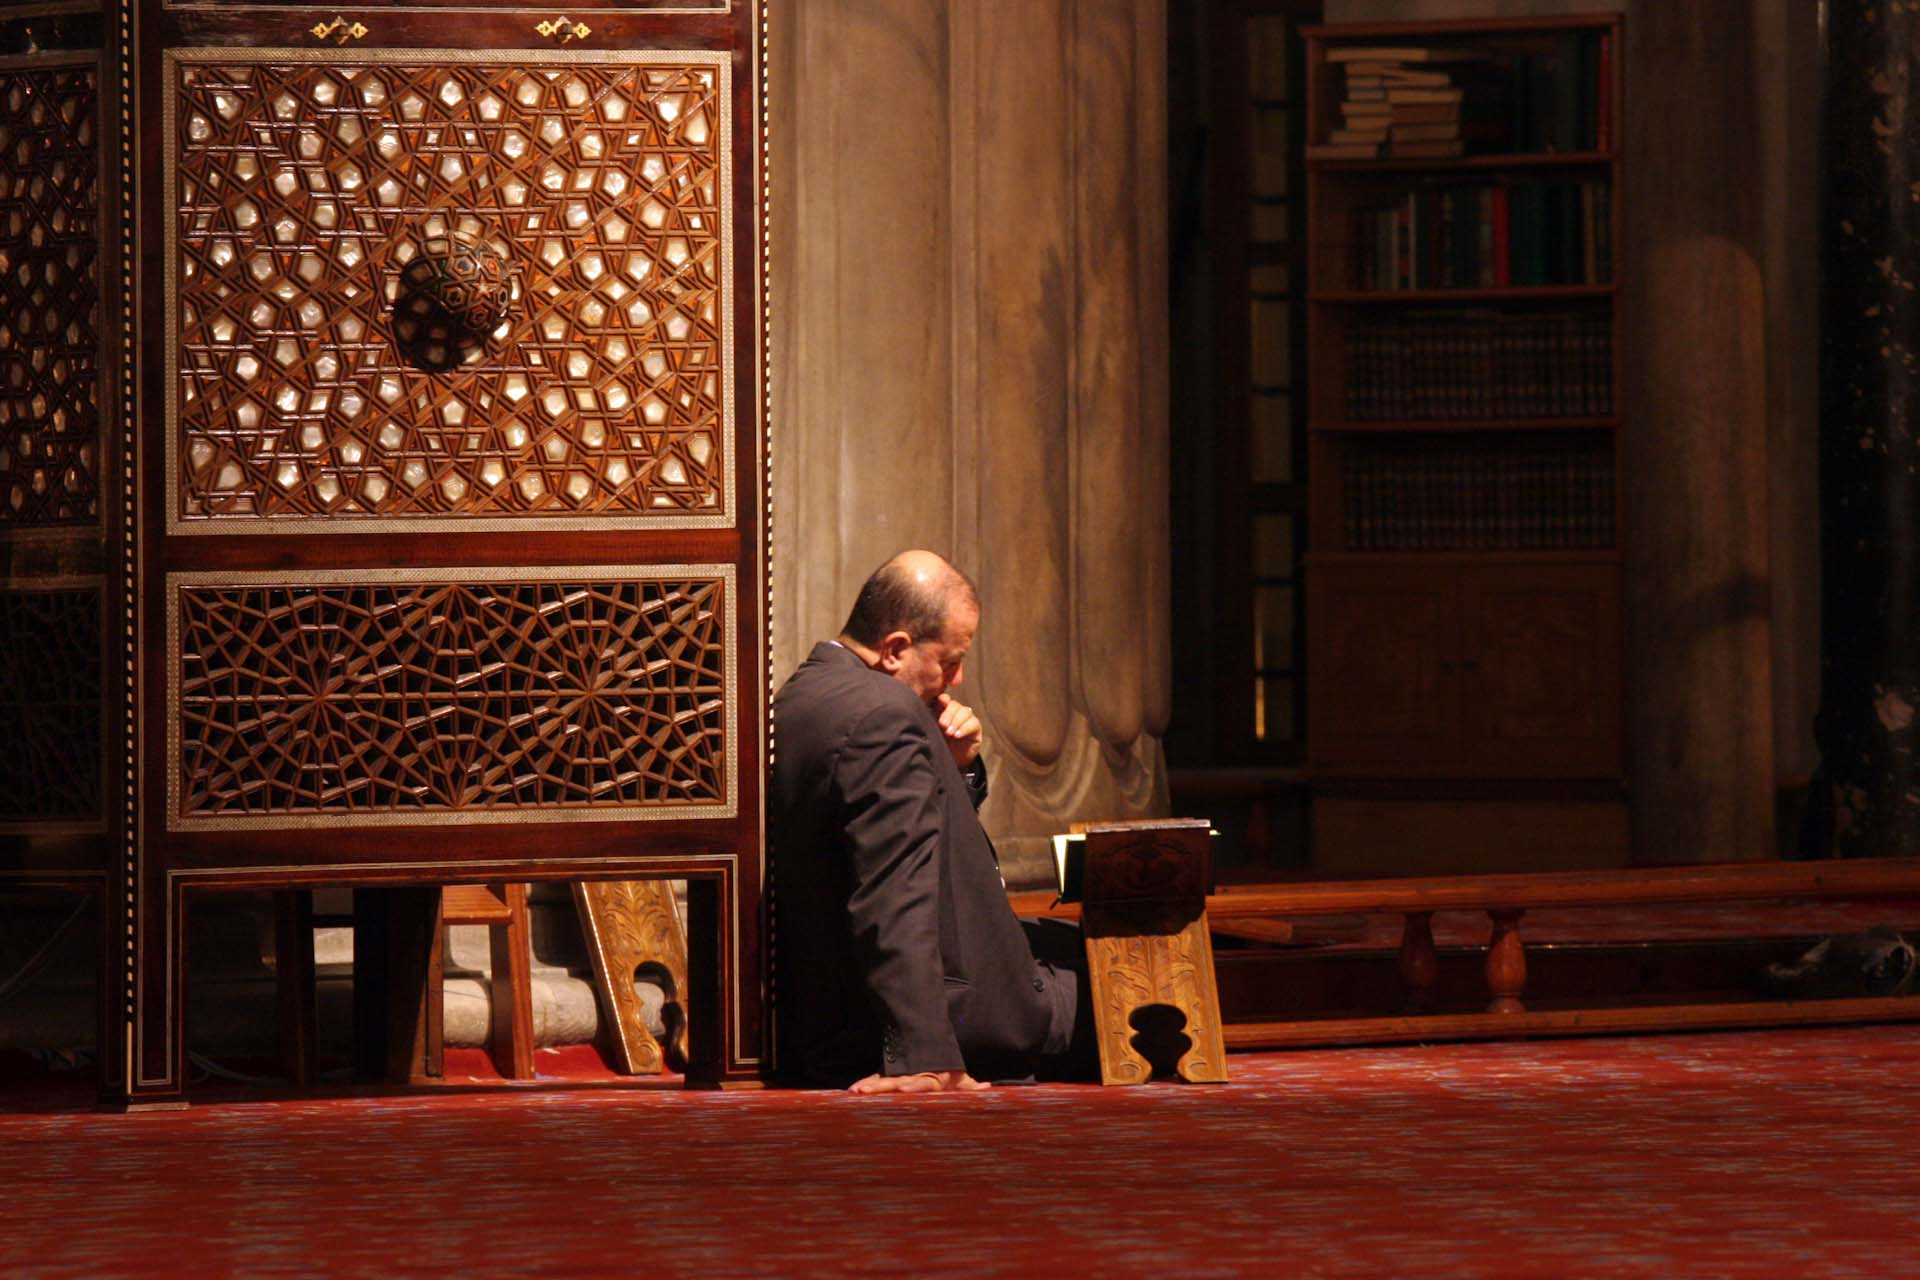 Man studies the Koran